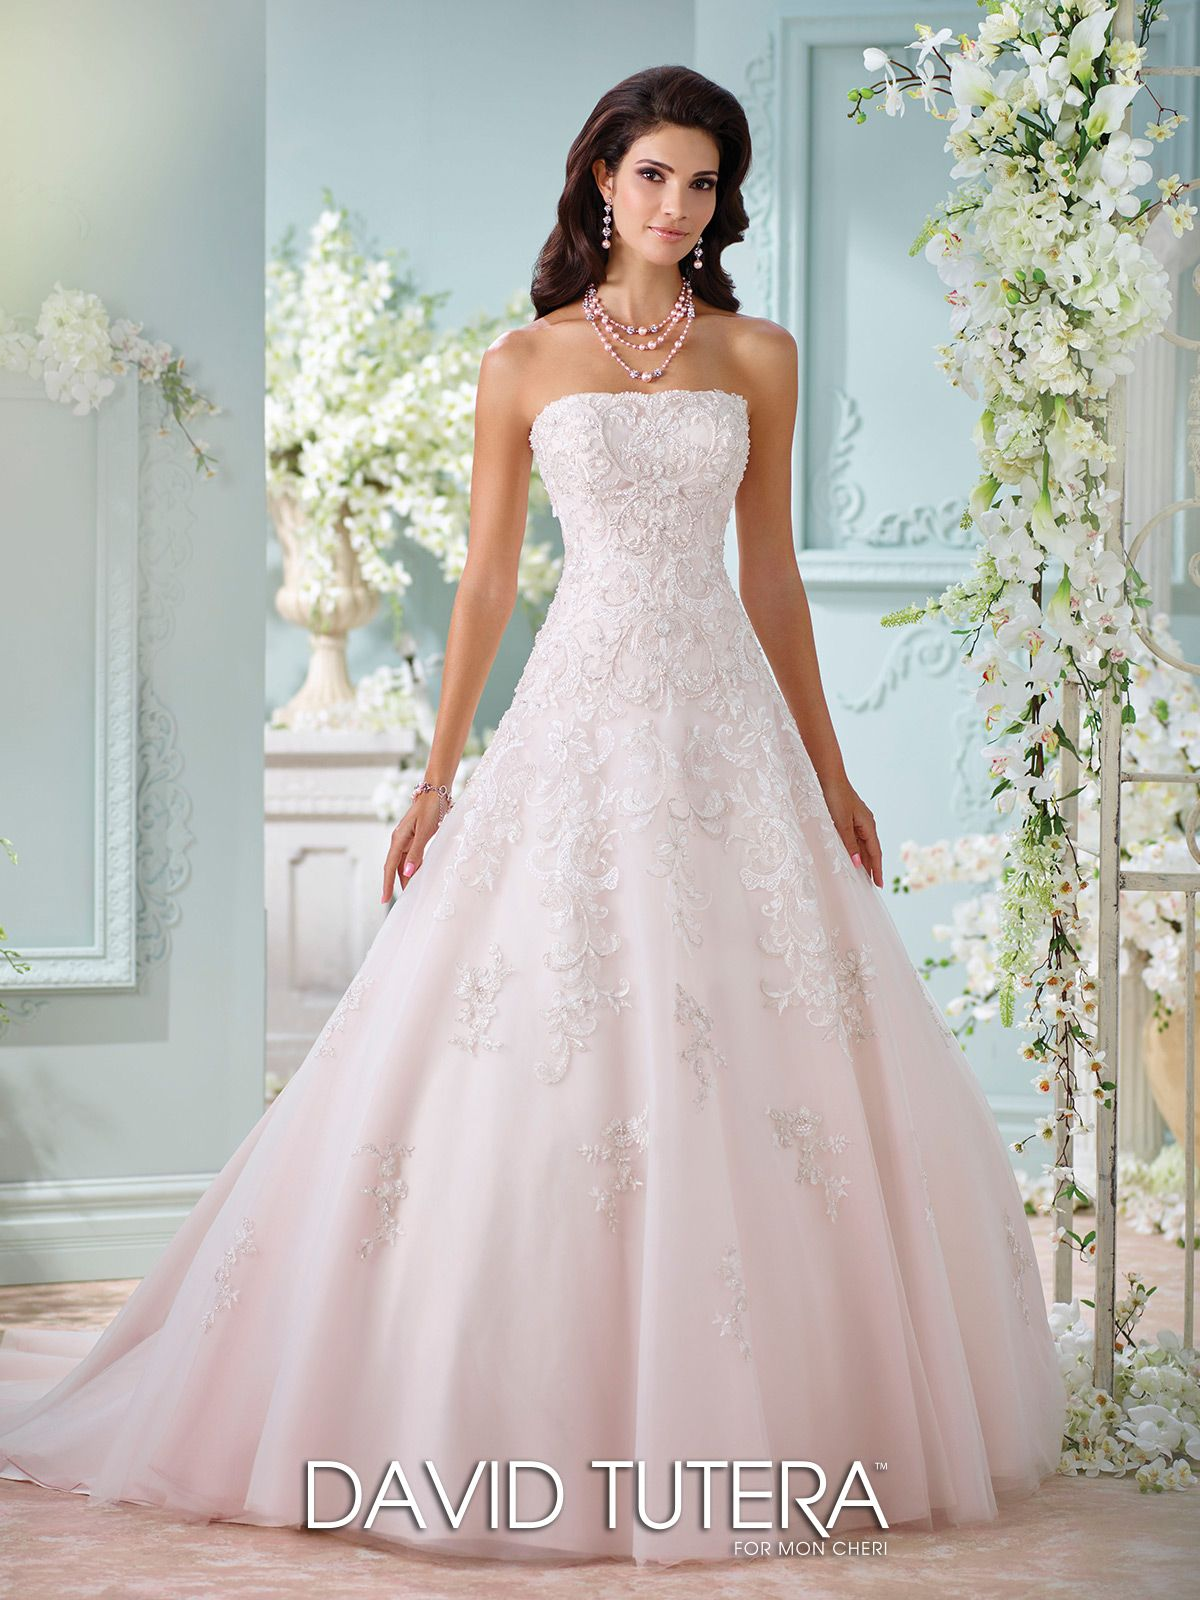 Style 116215 Sunniva Is An Elegant Lace Strapless Wedding Dress From The Spring 2016 David Tutera For Mon Cheri Collection Click More Information: Clic Lace Strapless Wedding Dresses At Websimilar.org